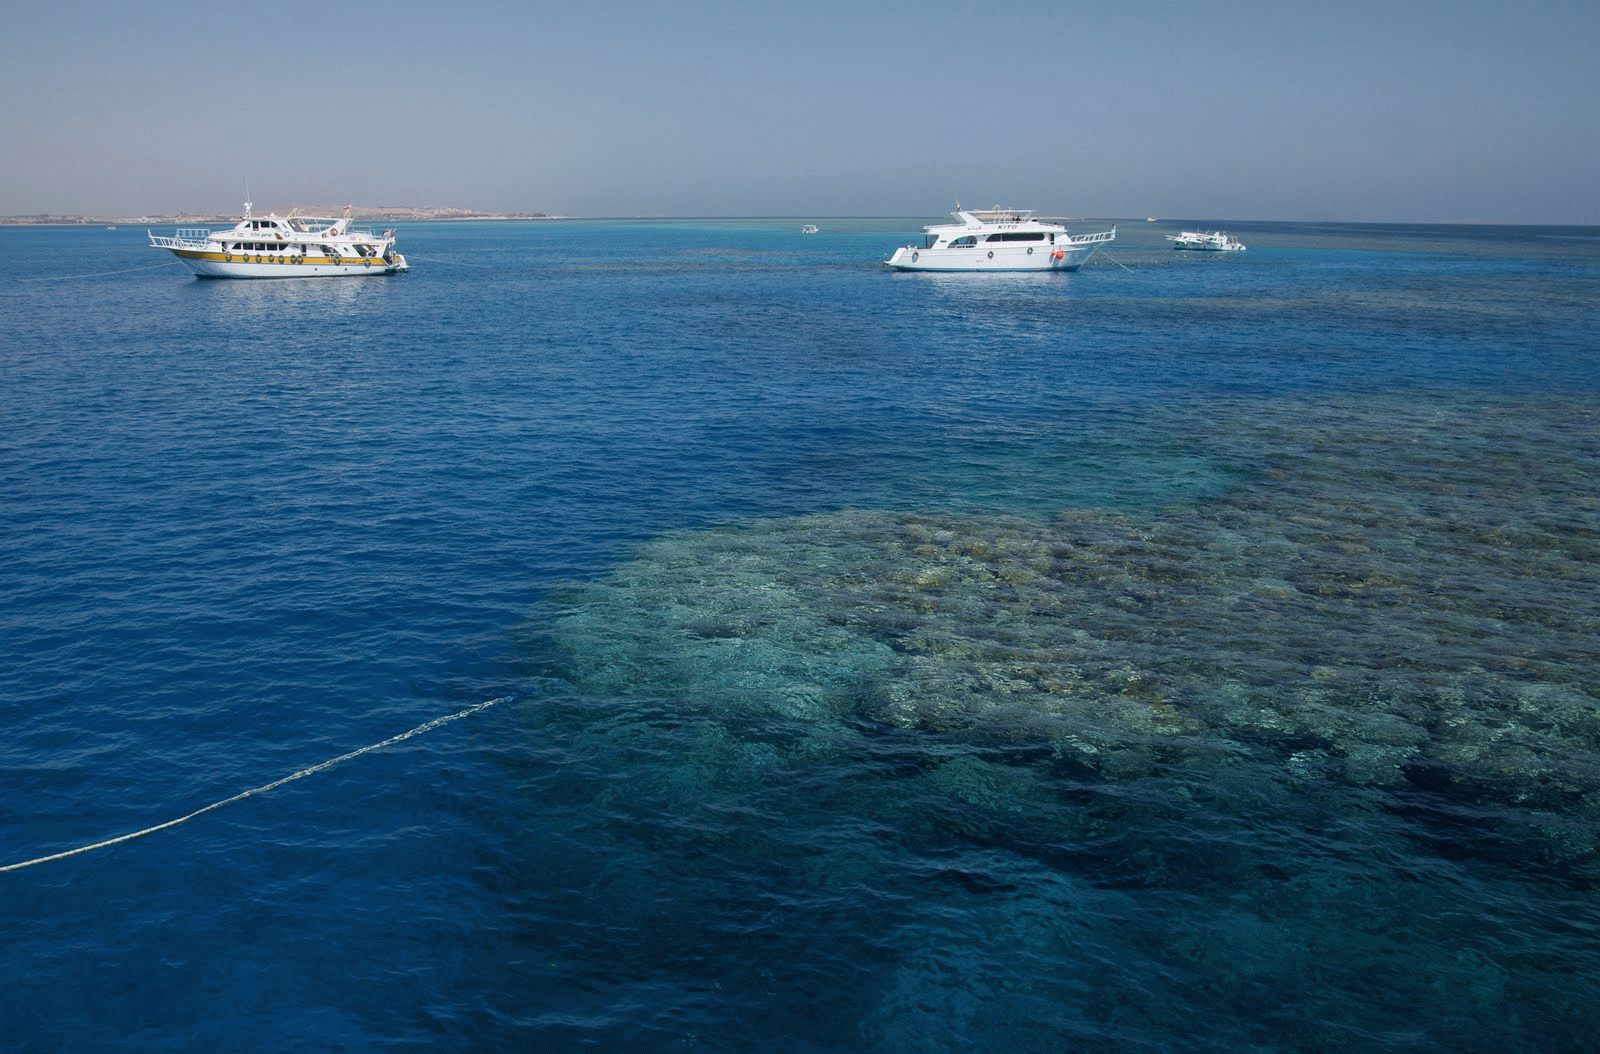 an in depth look at the red sea The canal stretches over 100 mi (160 km) from port said on the mediterranean sea to suez on the red sea the first efforts to build a modern canal came from the egypt expedition of napoleon bonaparte, who hoped the project would give france a trade adavantage over england.